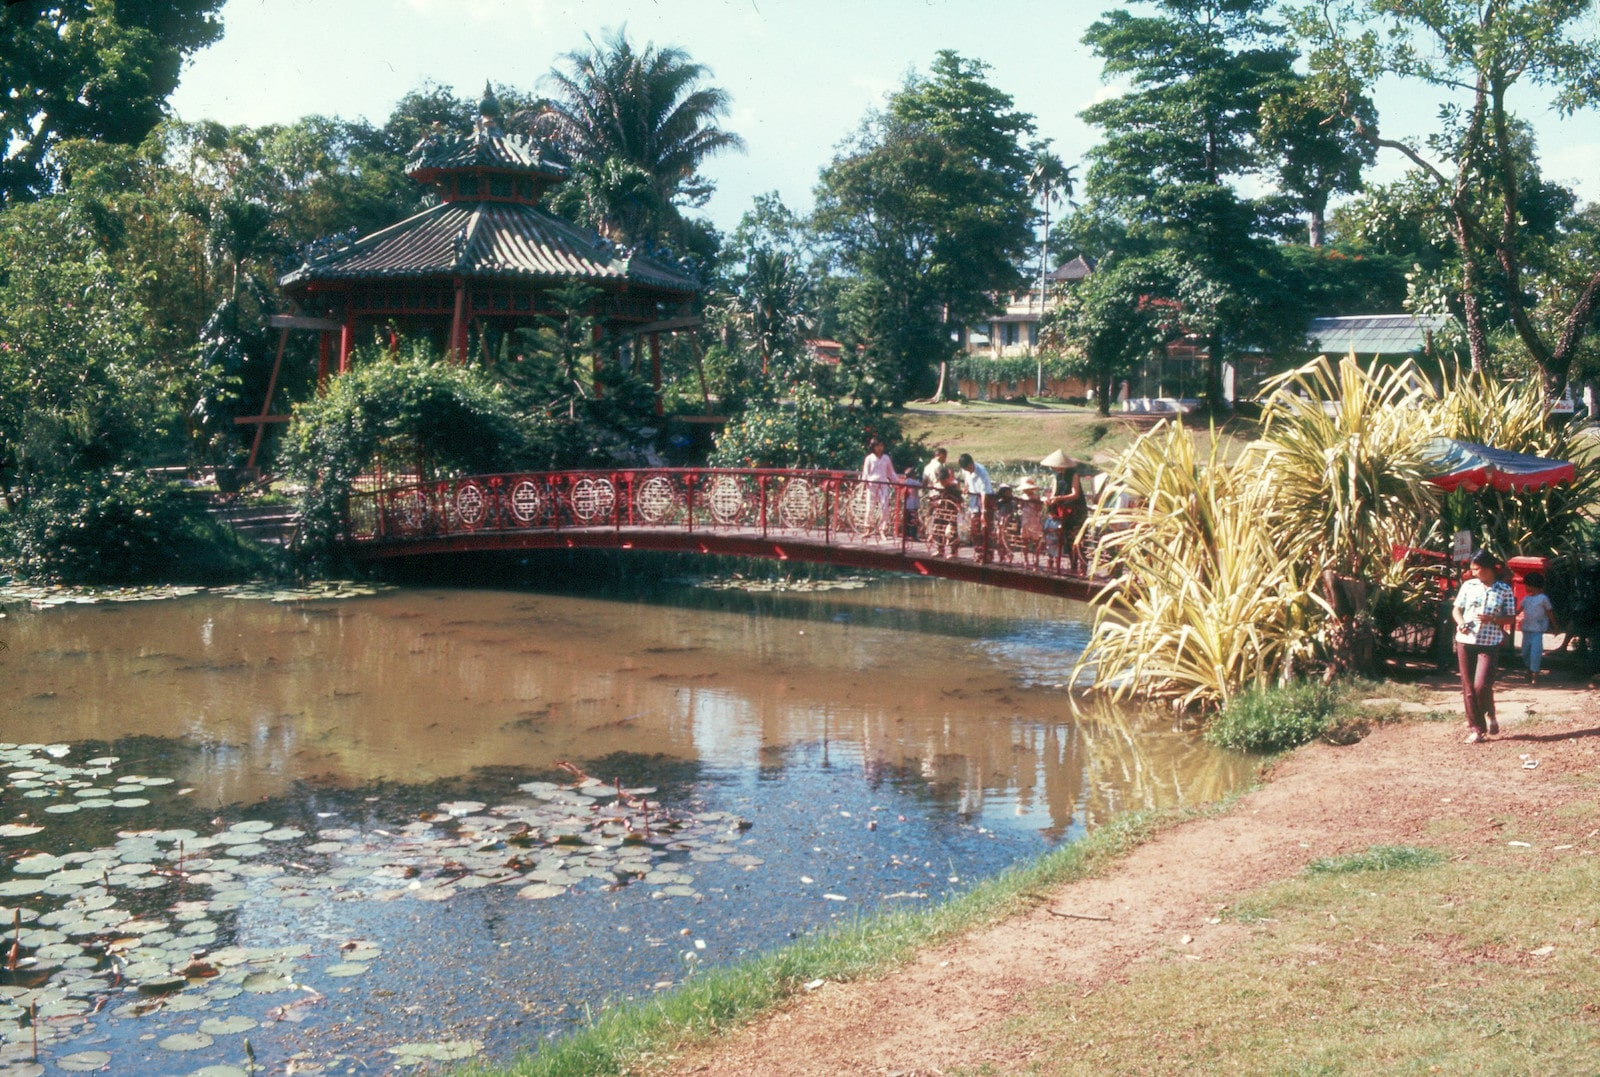 Image of the Saigon Zoo and Botanical Gardens in 1970